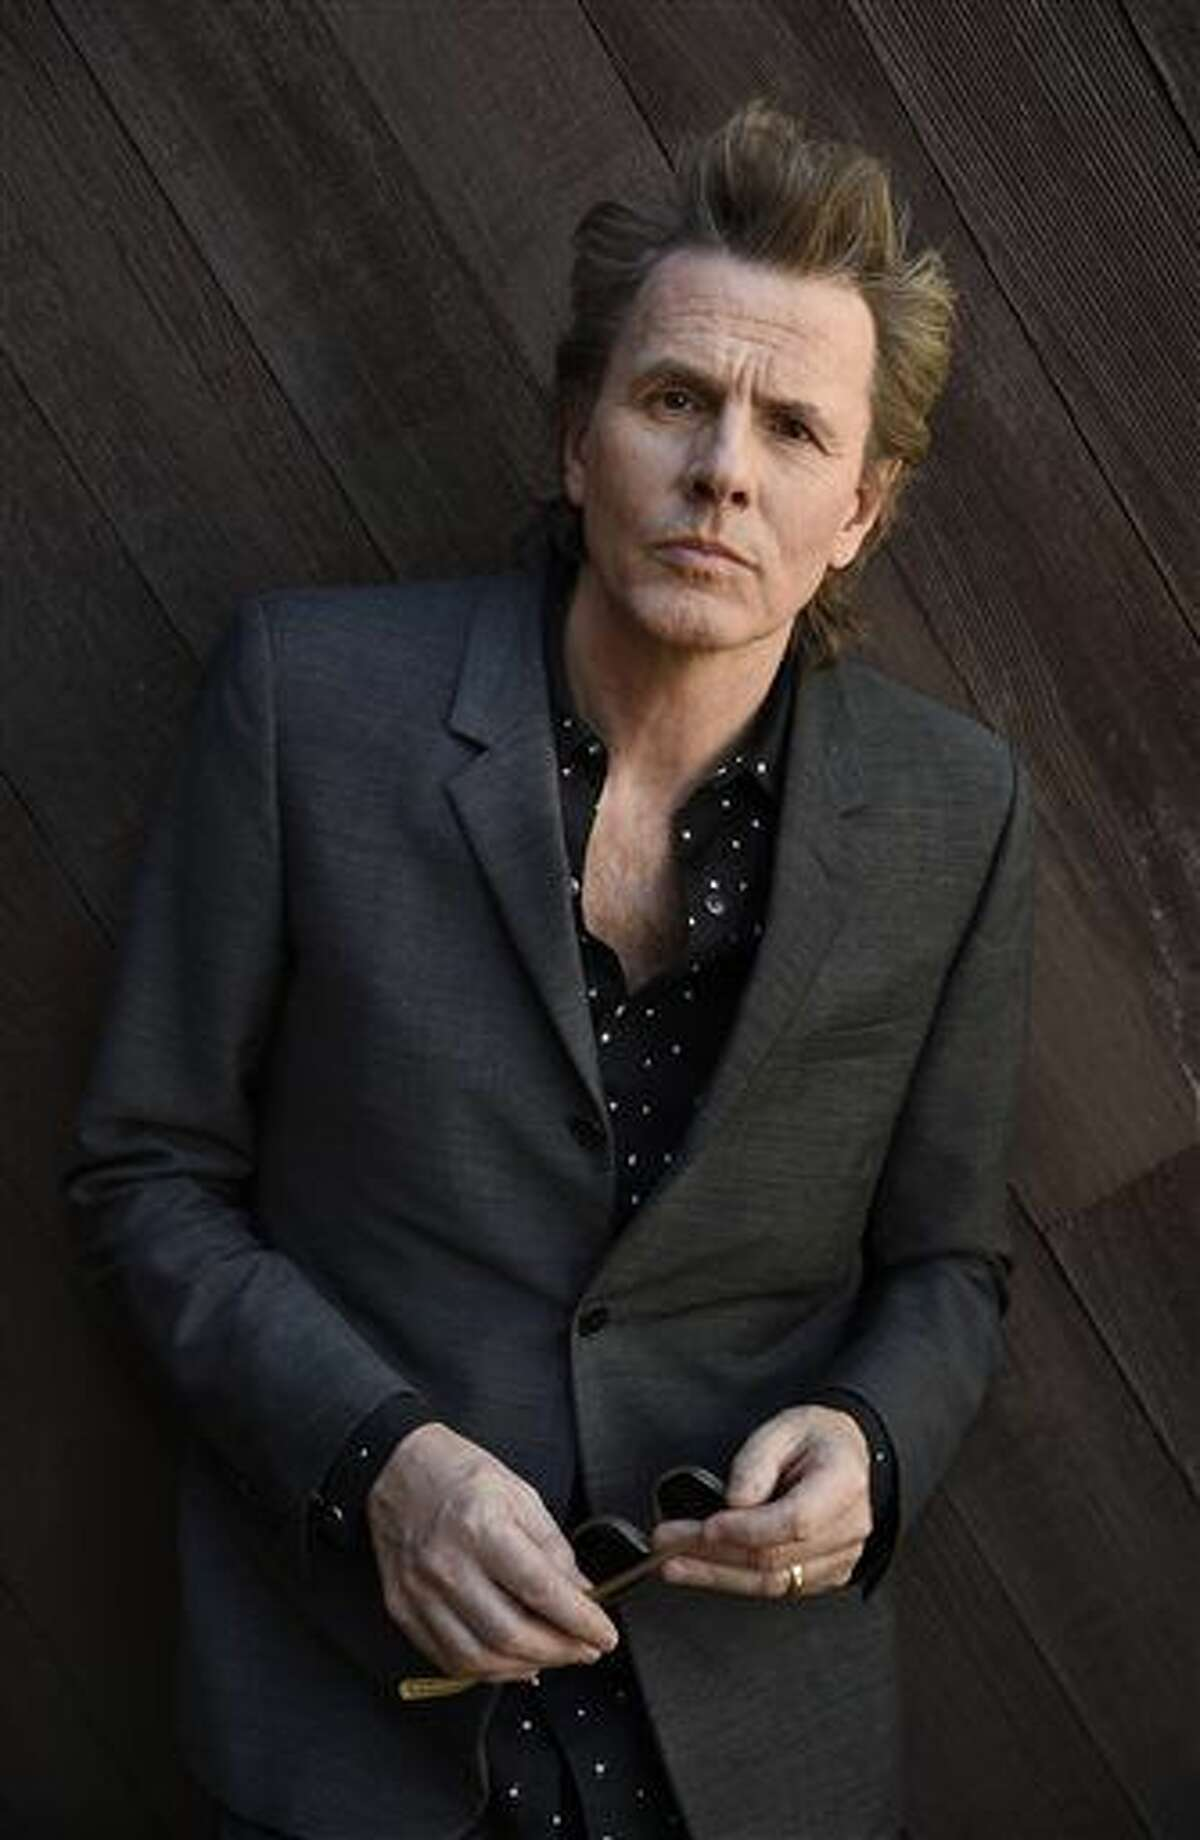 """In this Feb. 9, 2016 photo, John Taylor from the band Duran Duran poses for a portrait at Warner Bros. Records in Burbank, Calif., to promote the band's upcoming """"Paper Gods Tour,"""" kicking off March 25. (Photo by Chris Pizzello/Invision/AP)"""